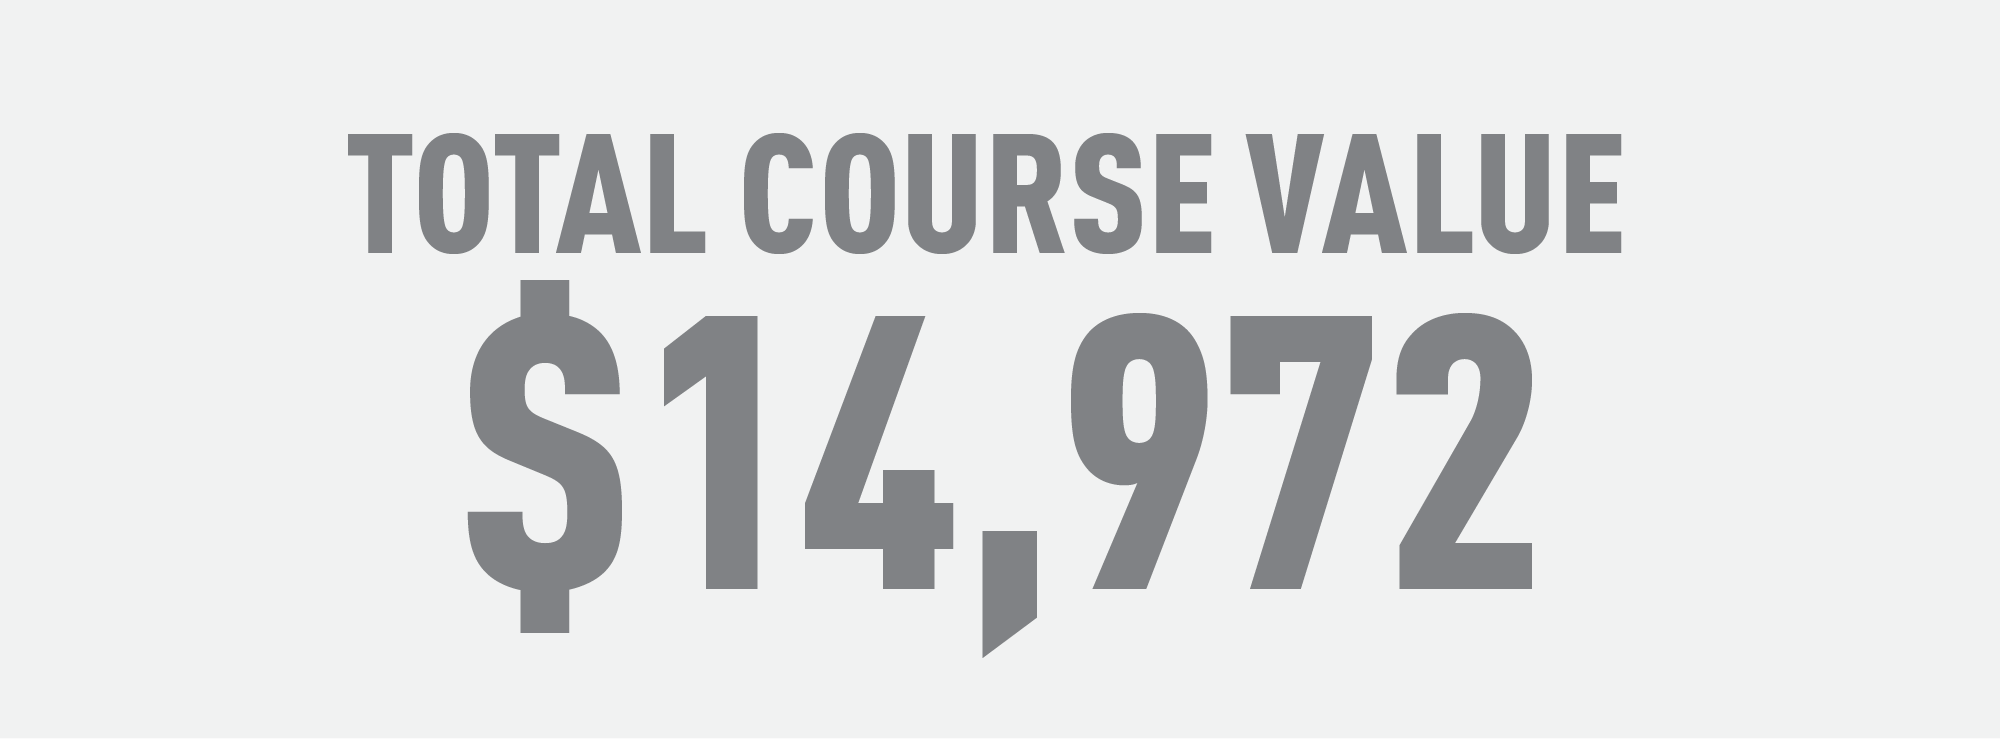 Course Value-$14972.png